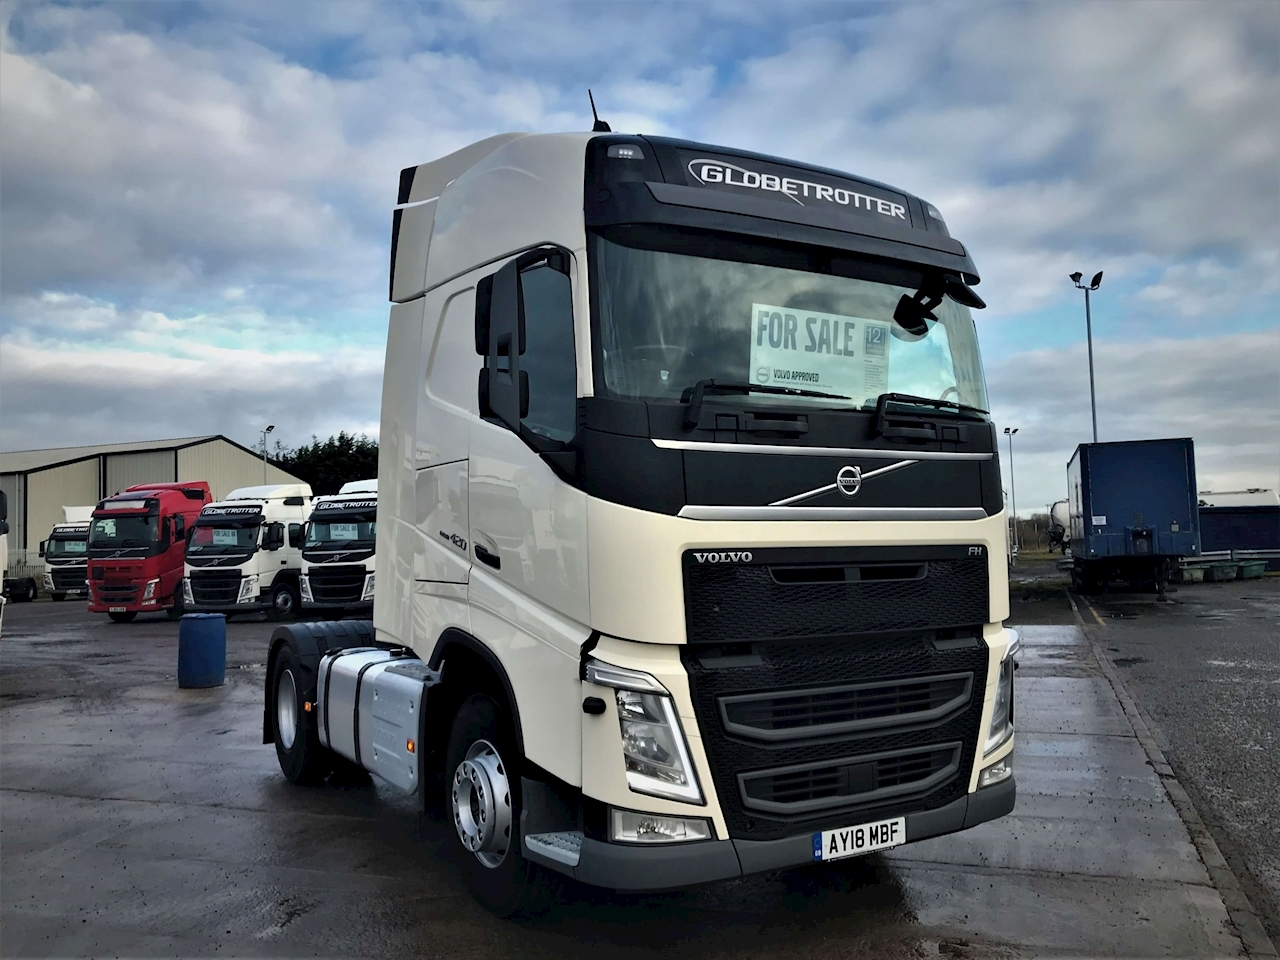 Volvo FH 420 4x2 Globetrotter 12.8 2dr Tractor Unit I-Shift Diesel